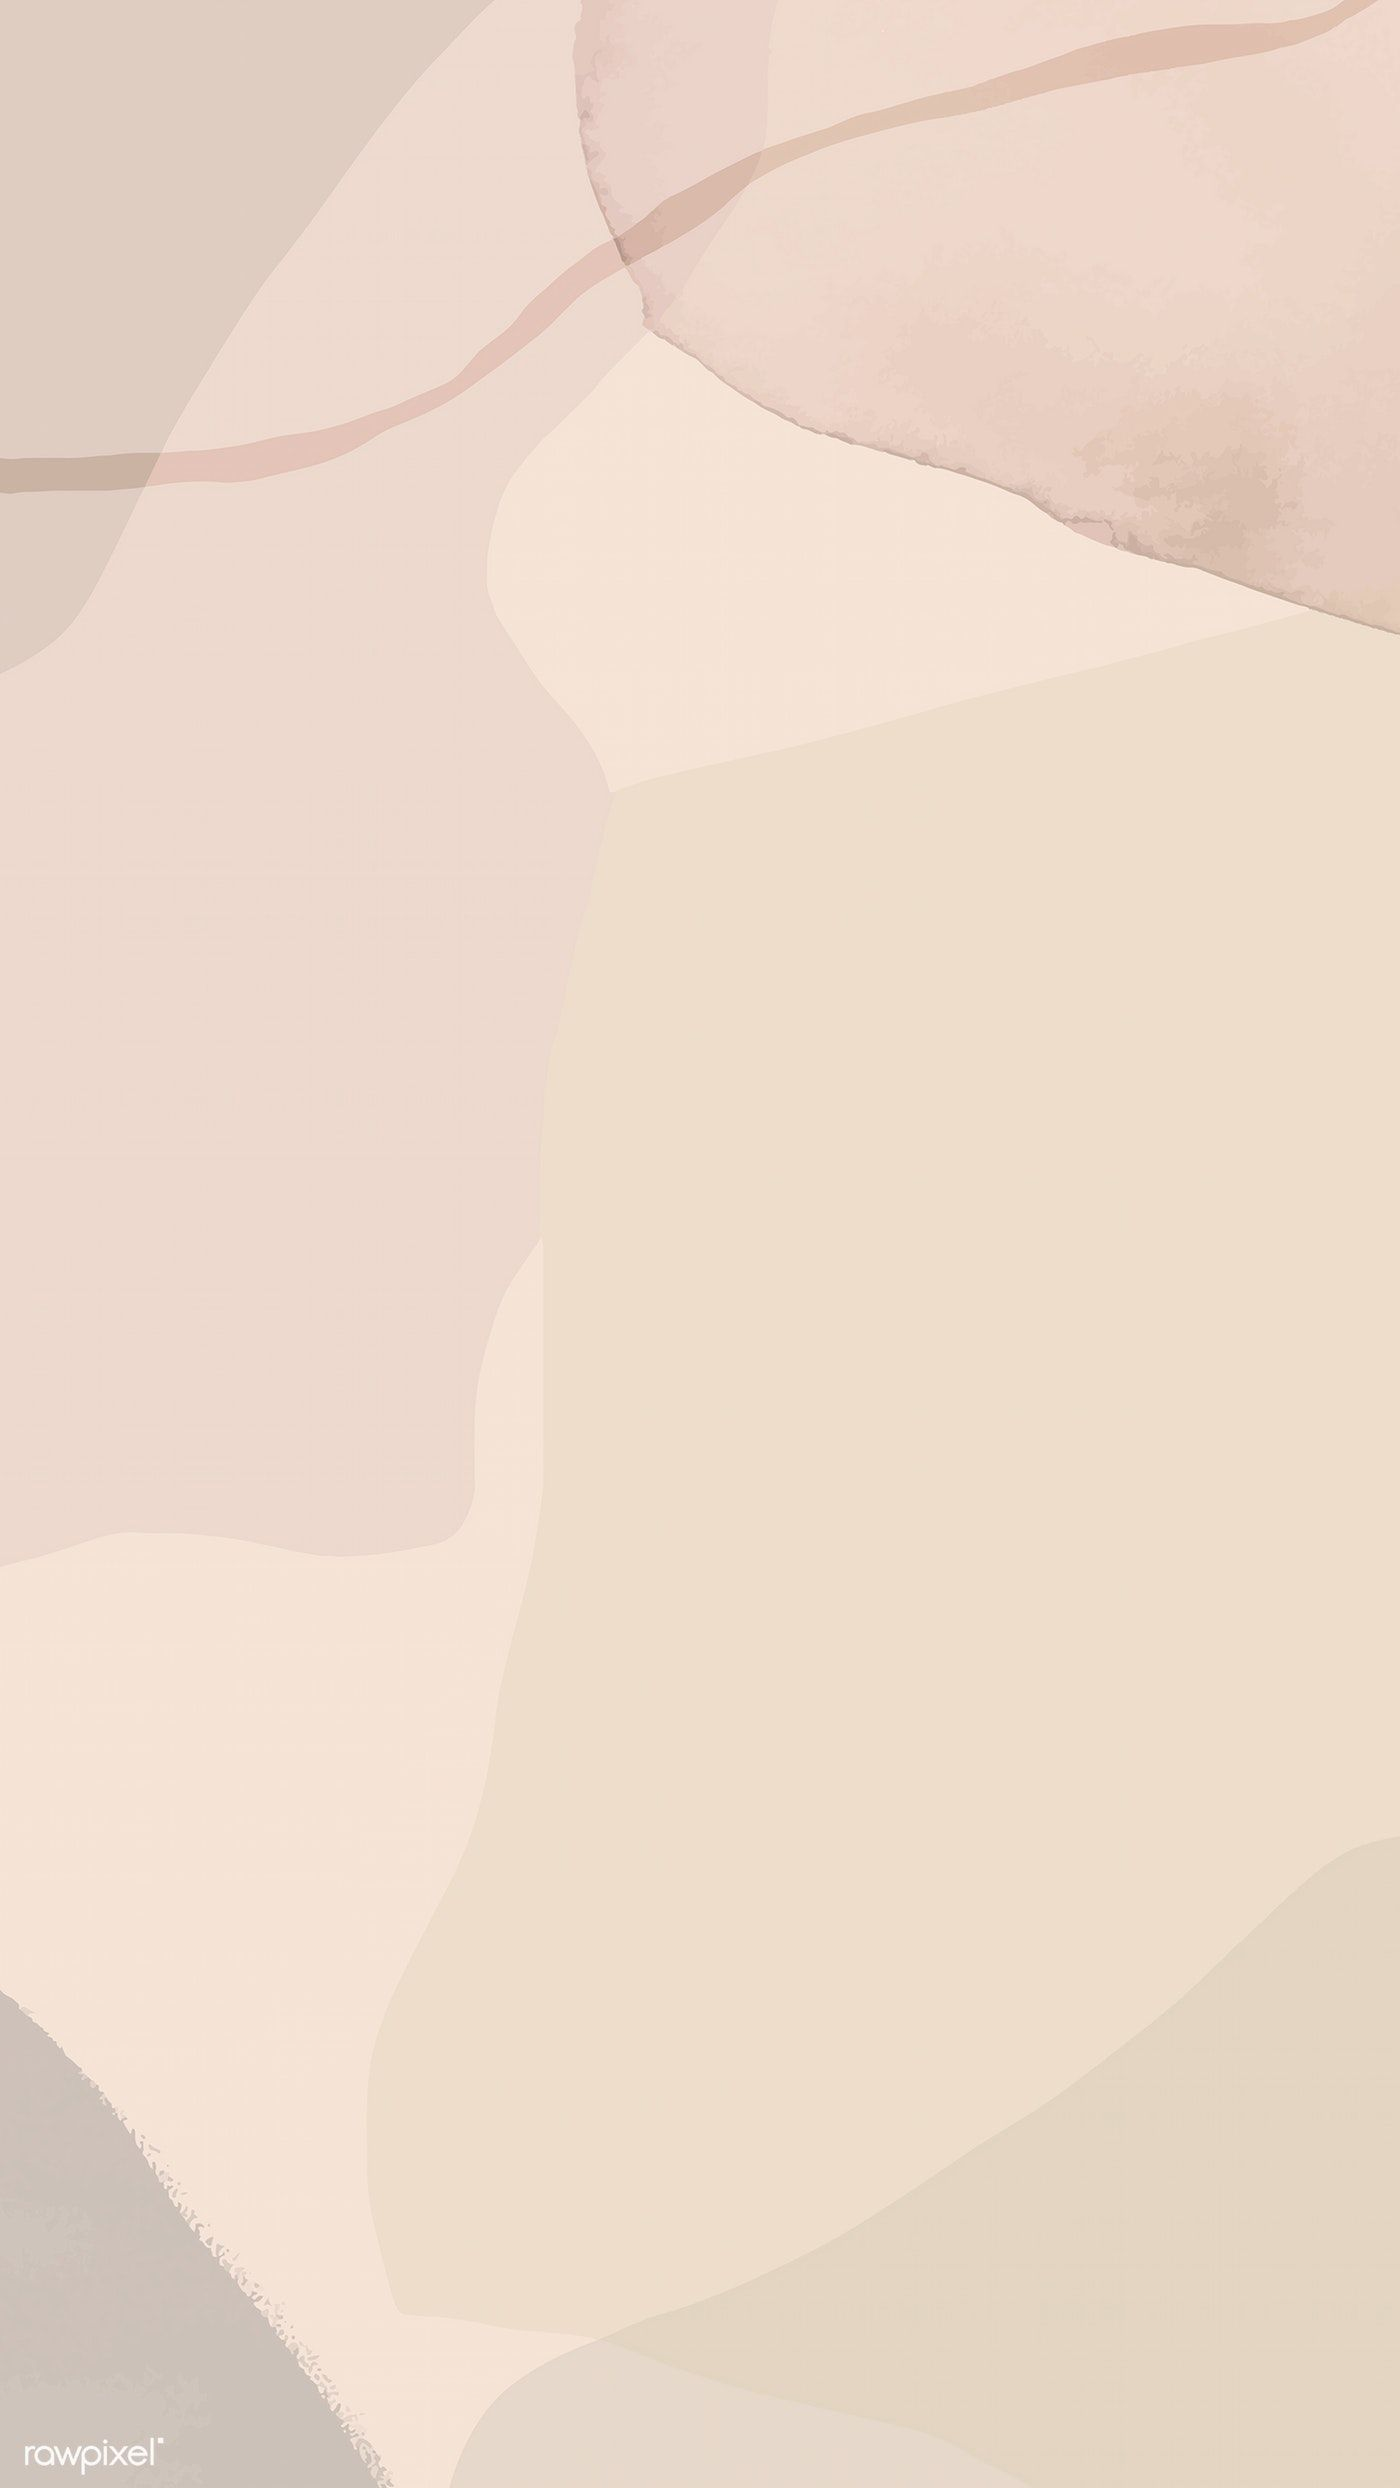 Download premium vector of Neutral soft abstract watercolor background